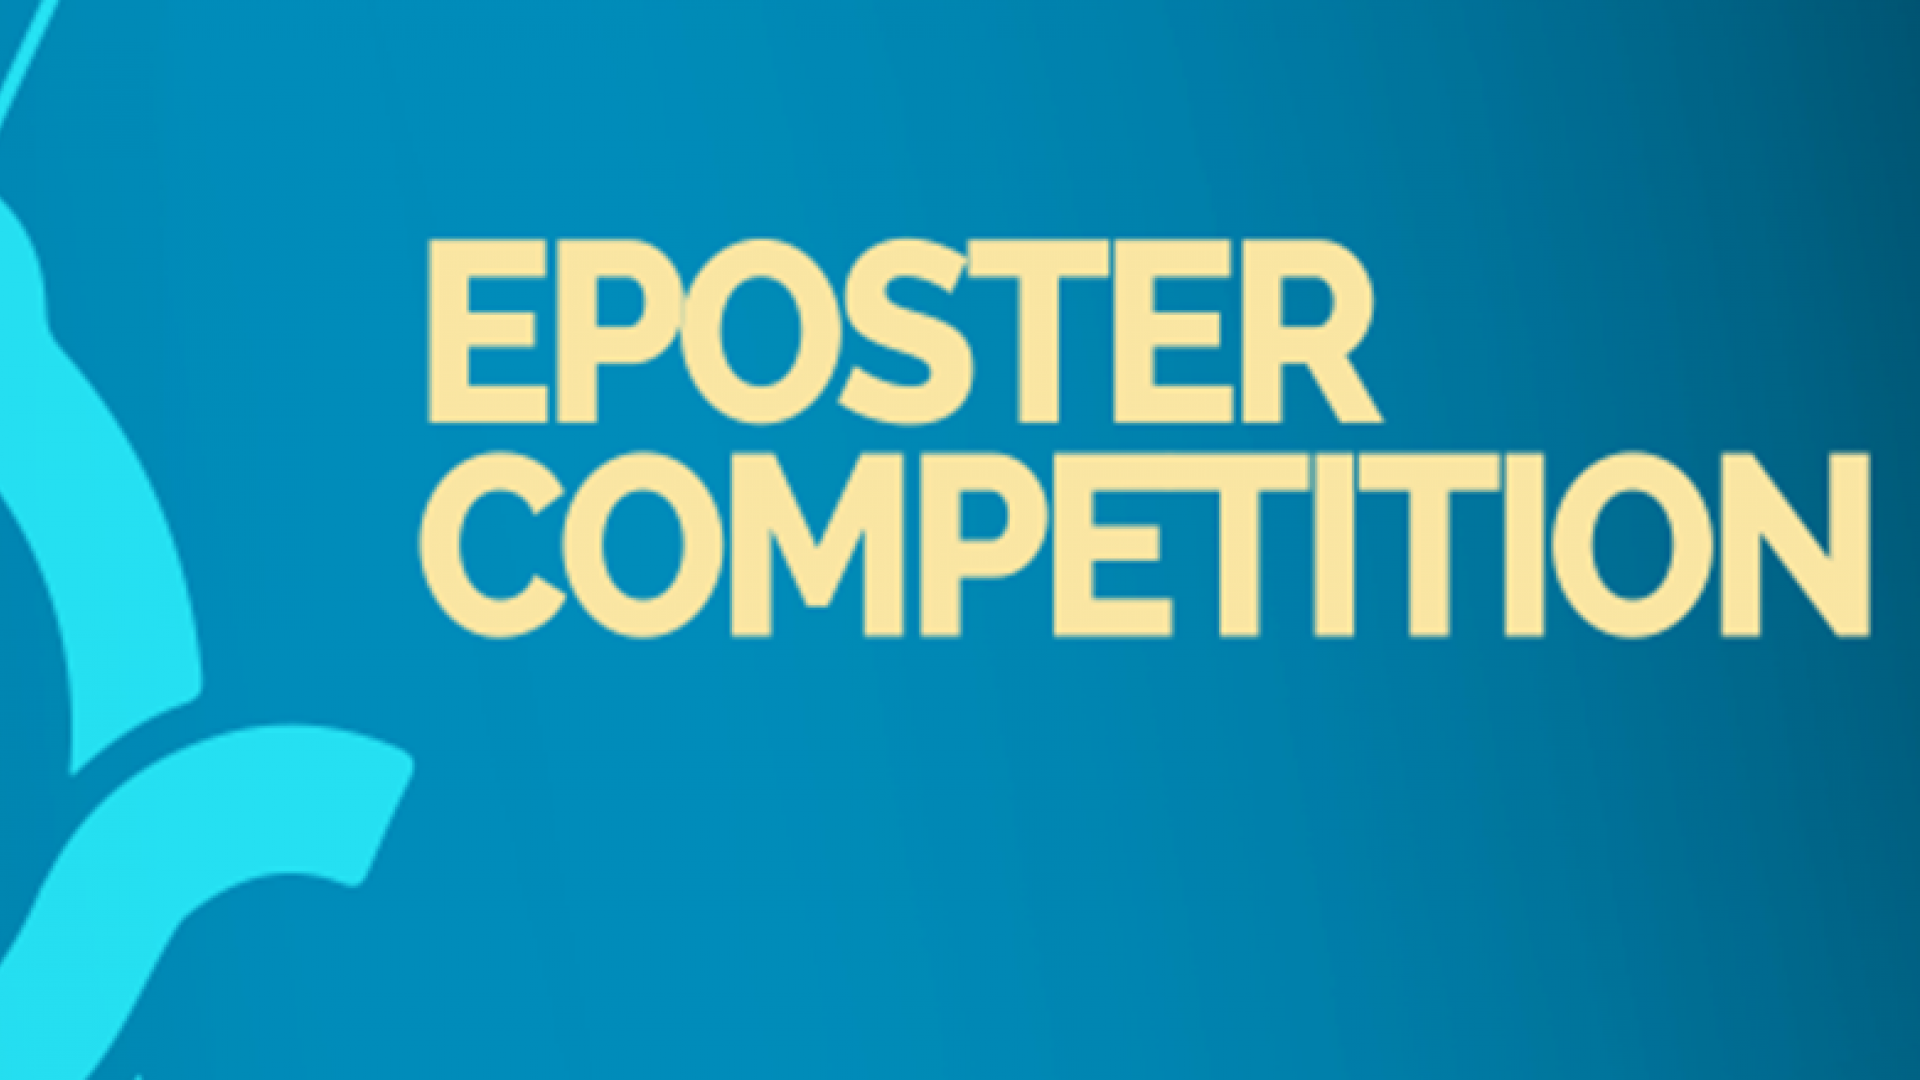 KAUST CEMSE EE IVUL Wep Eposter Competition logo